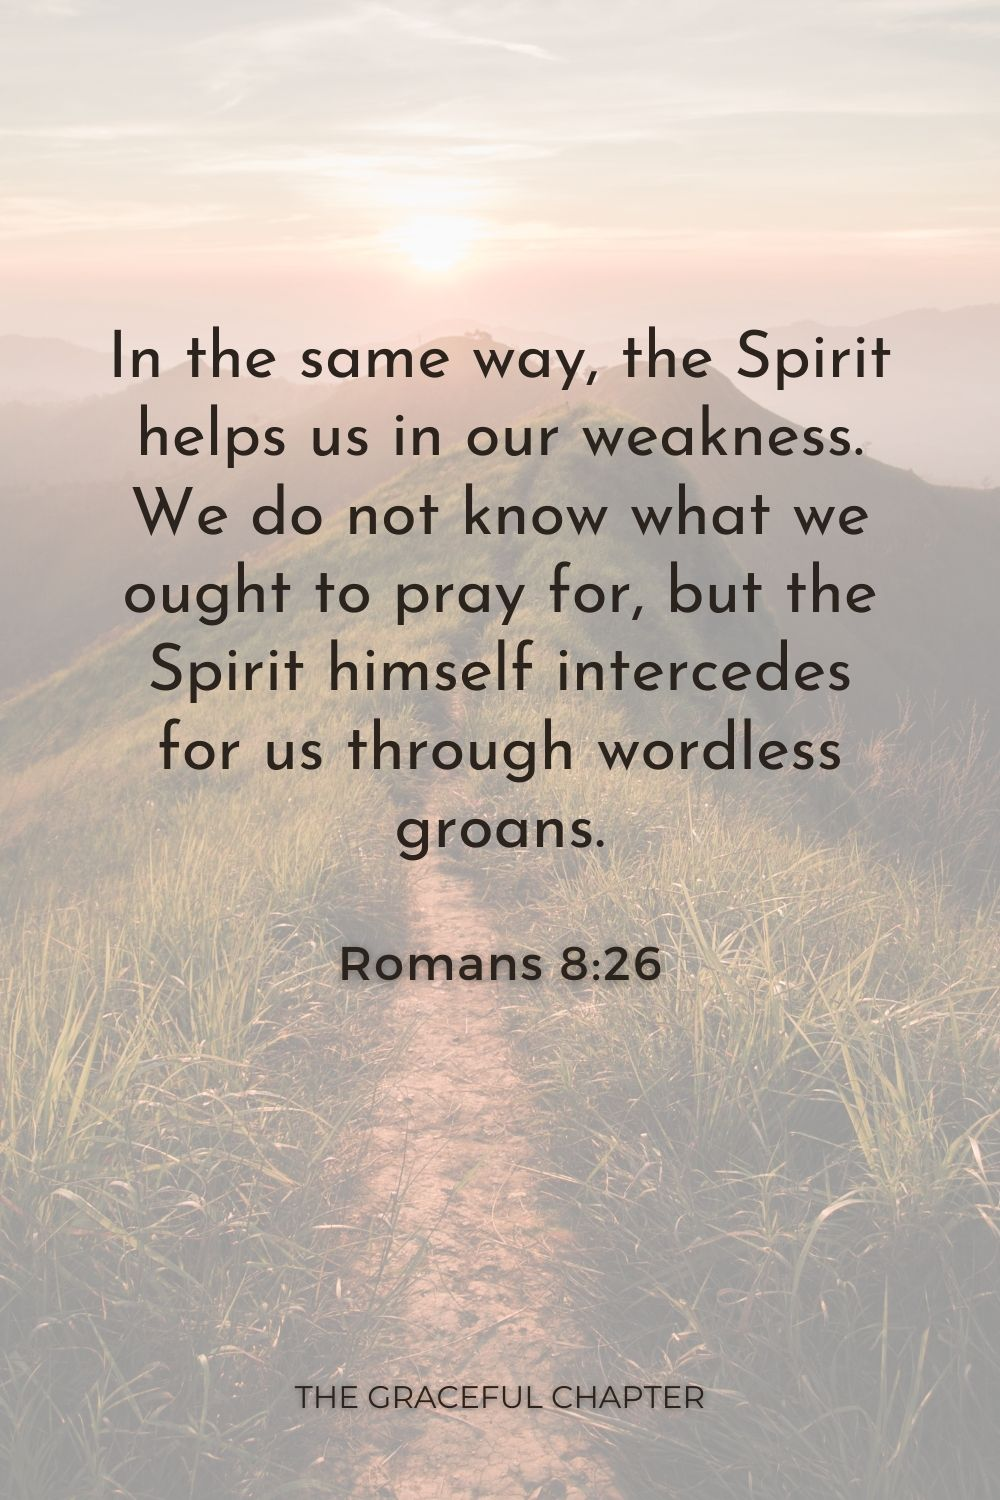 In the same way, the Spirit helps us in our weakness. We do not know what we ought to pray for, but the Spirit himself intercedes for us through wordless groans. Romans 8:26